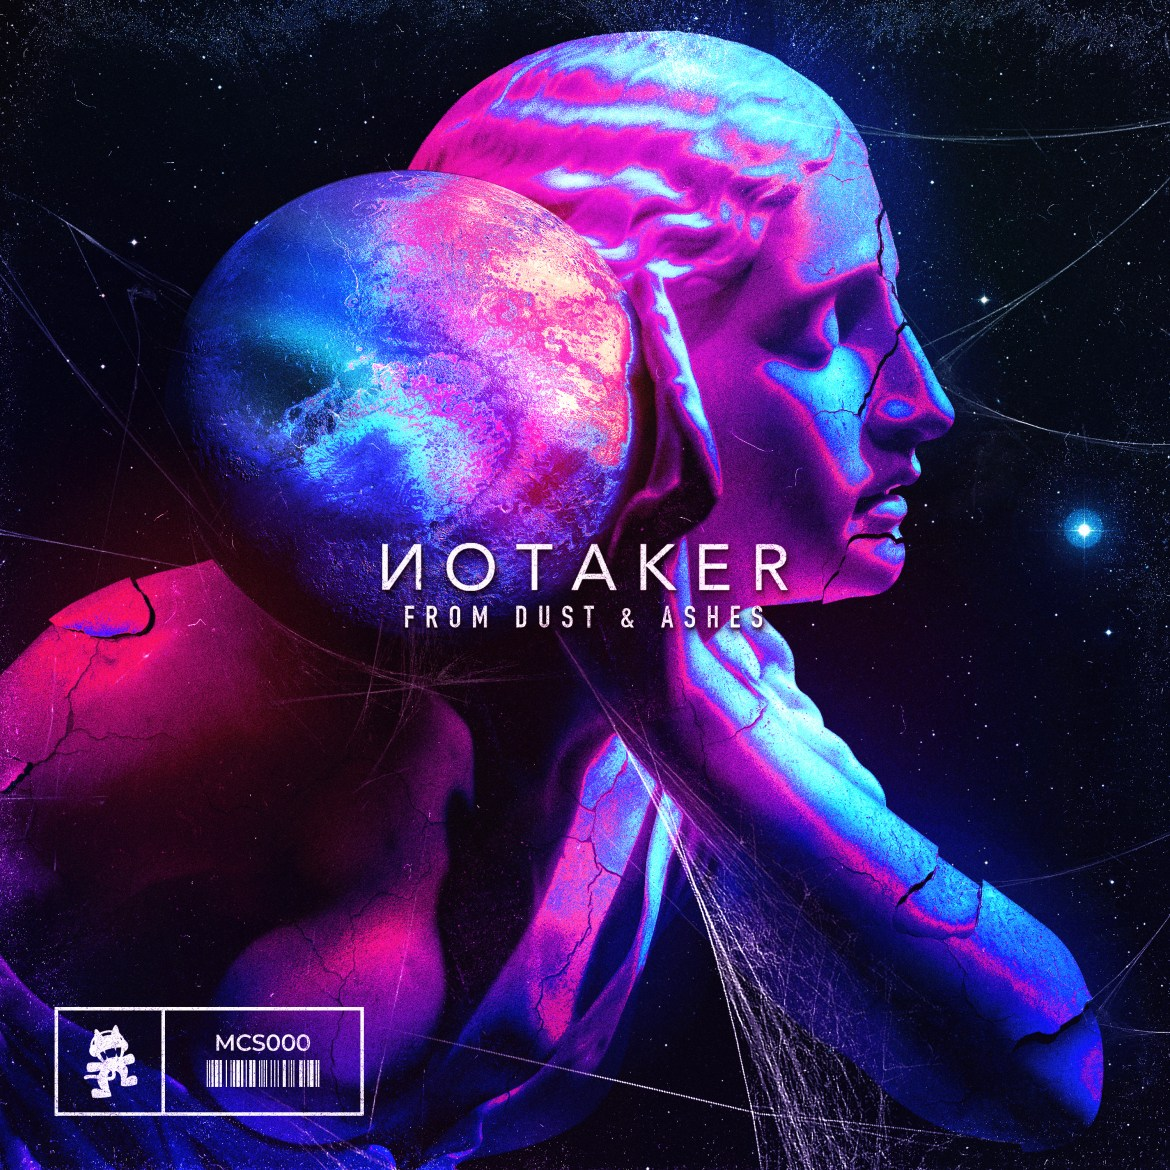 Notaker Delivers Explosive Progressive Single 'From Dust to Ashes' out now via Monstercat